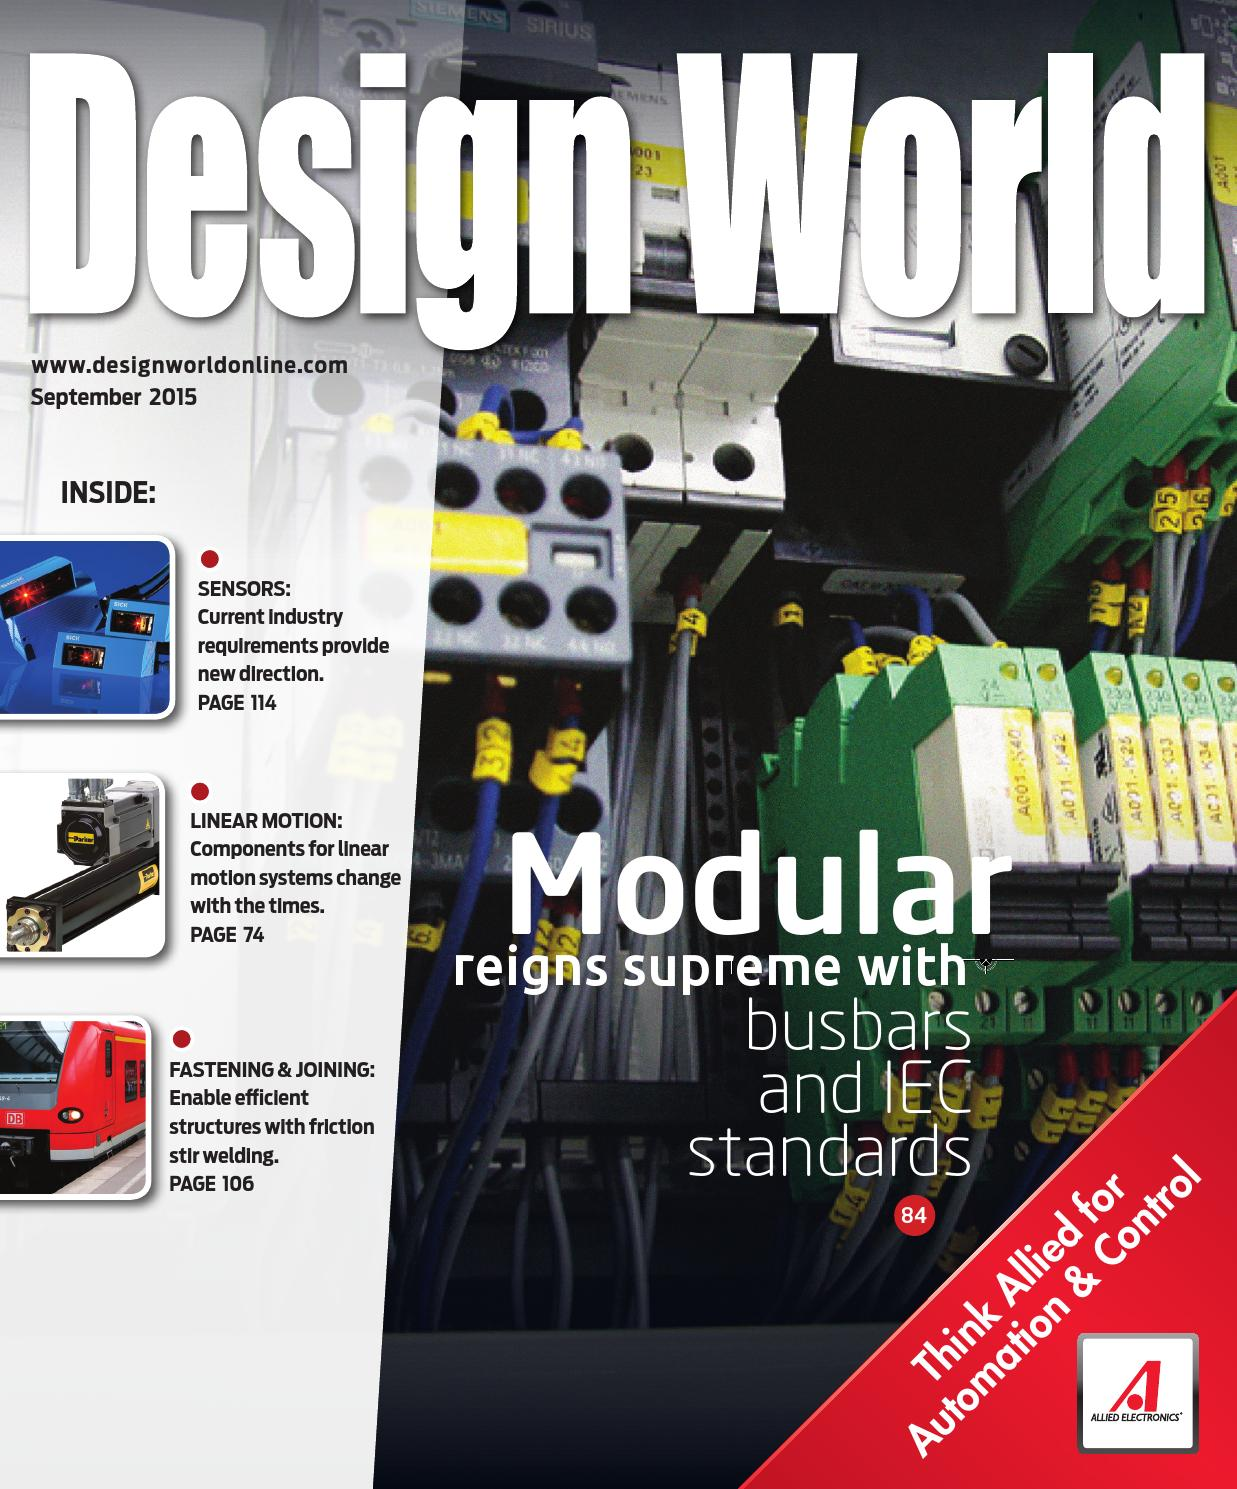 Design World September 2015 By Wtwh Media Llc Issuu Repeat Timer Circuit Diagram Electronic Circuits Pinterest